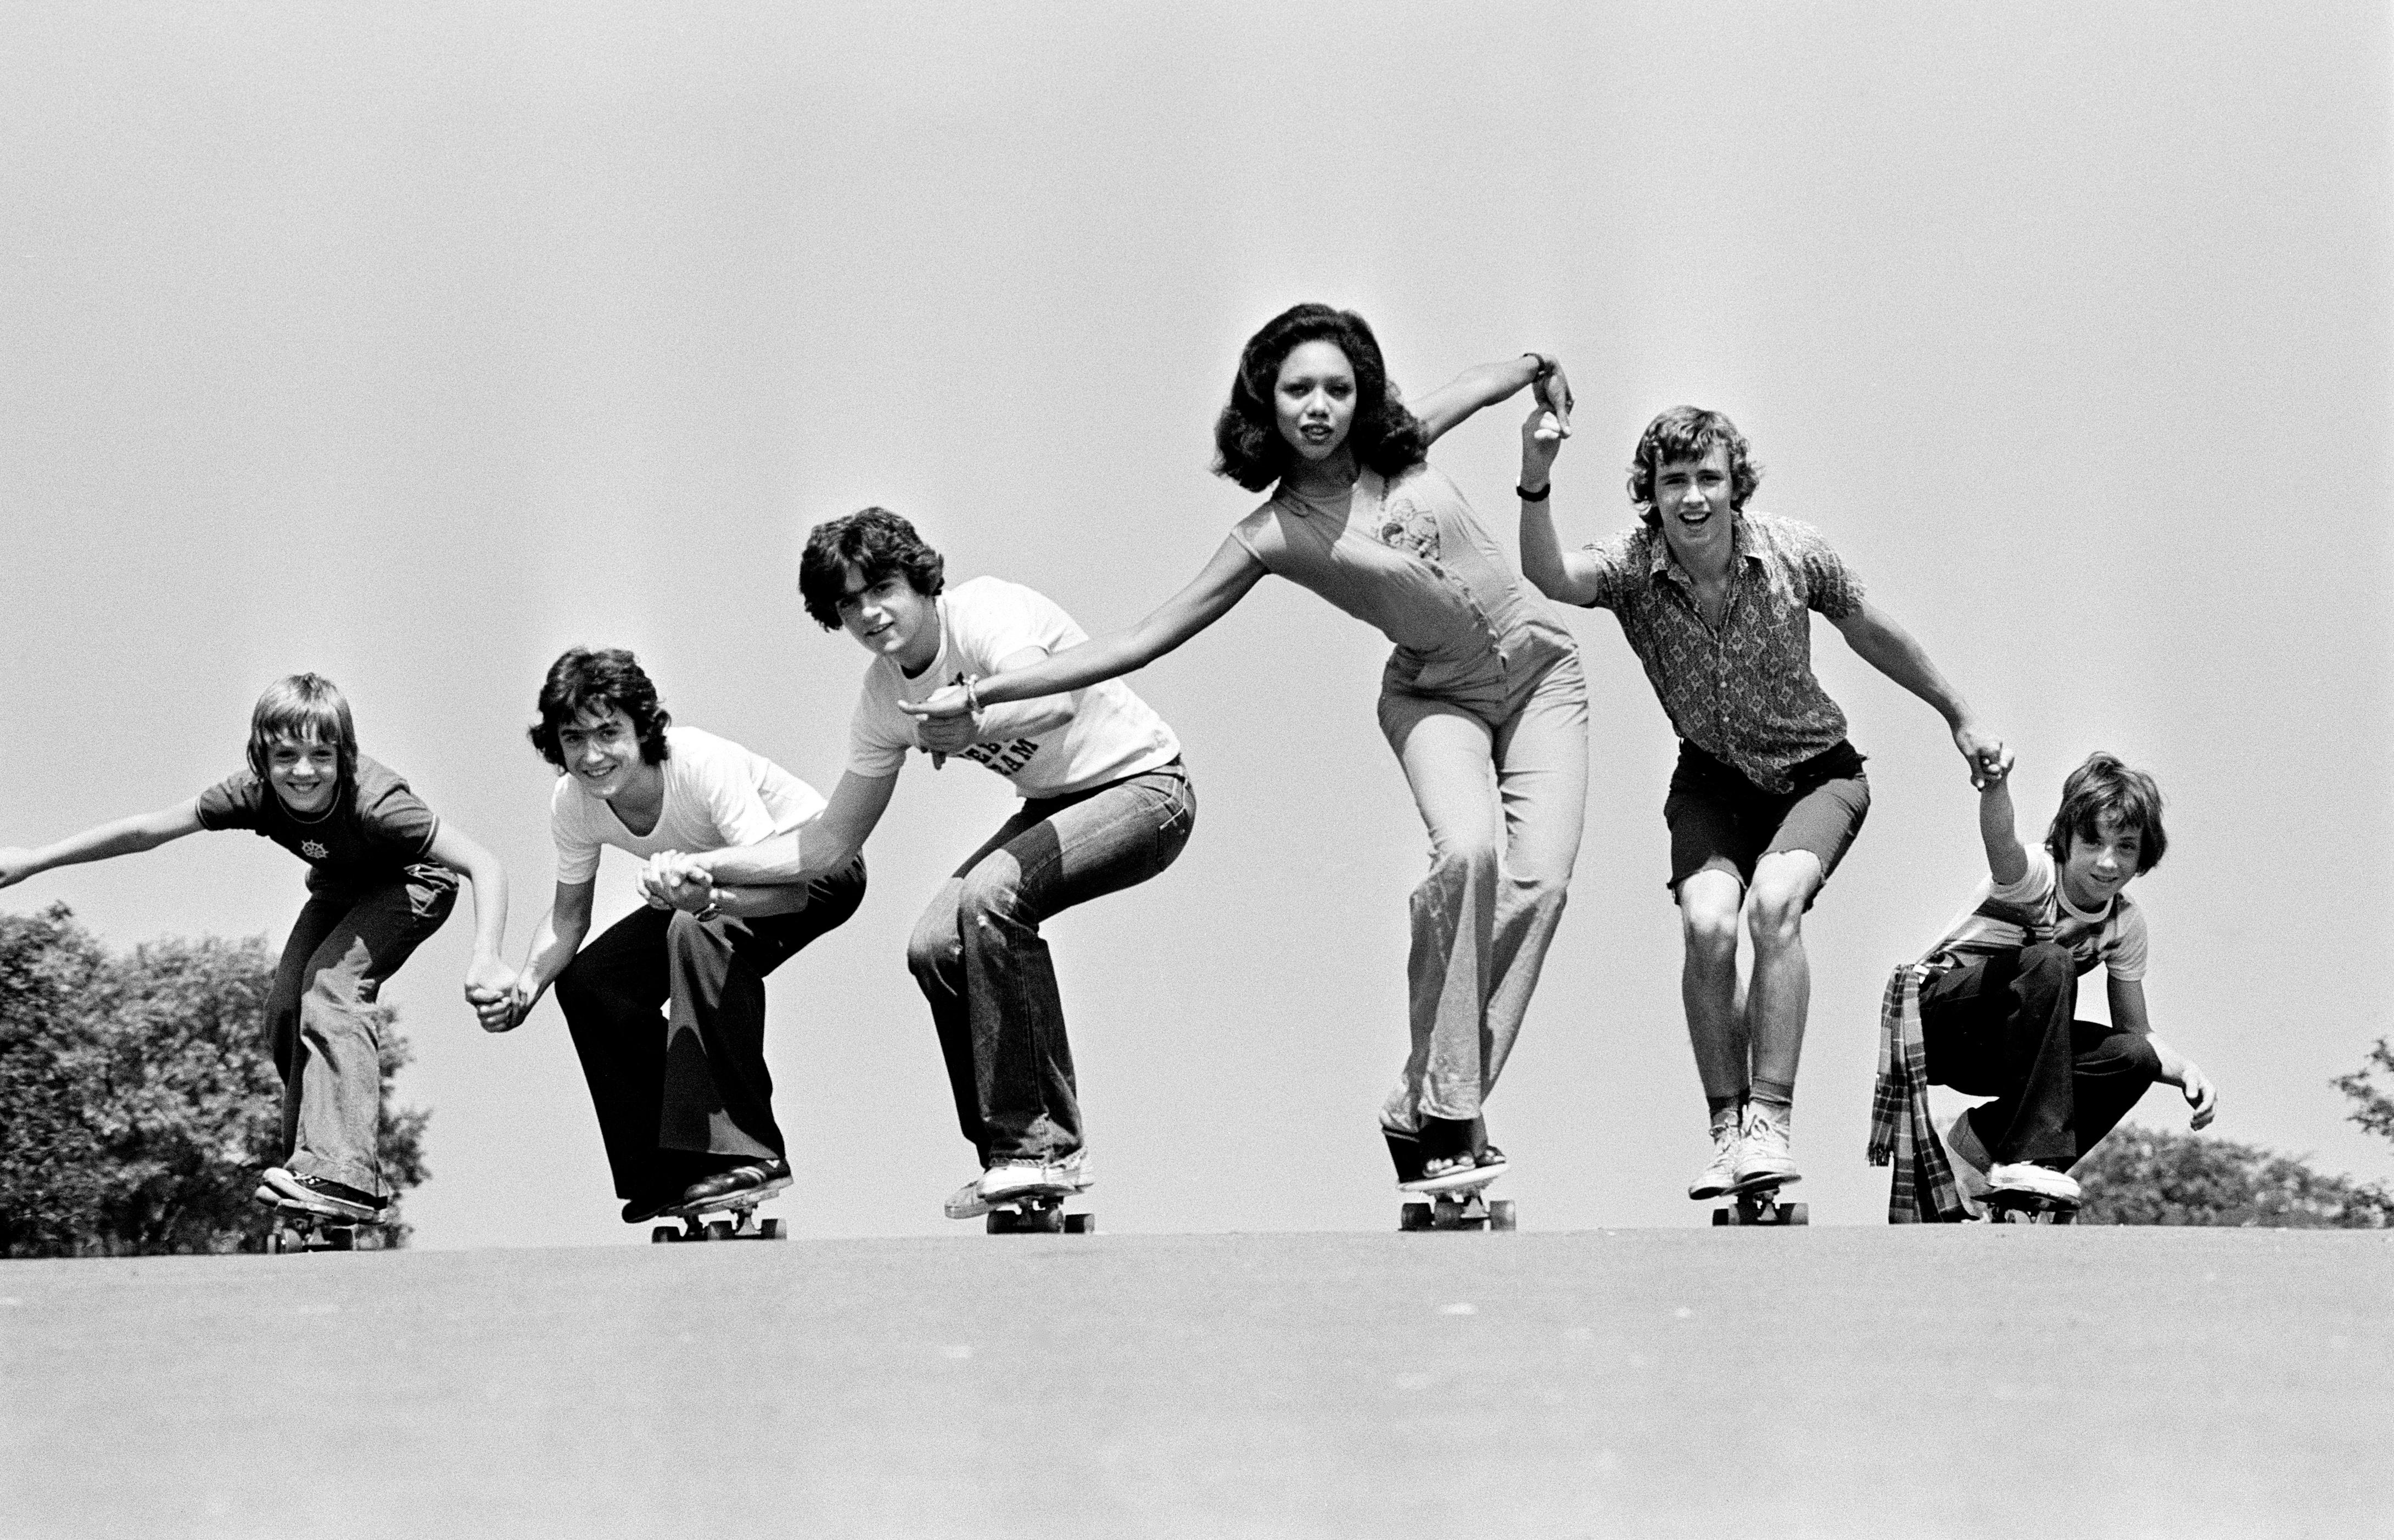 Buy a classic Guardian photograph: fashion on skateboards, June 1976